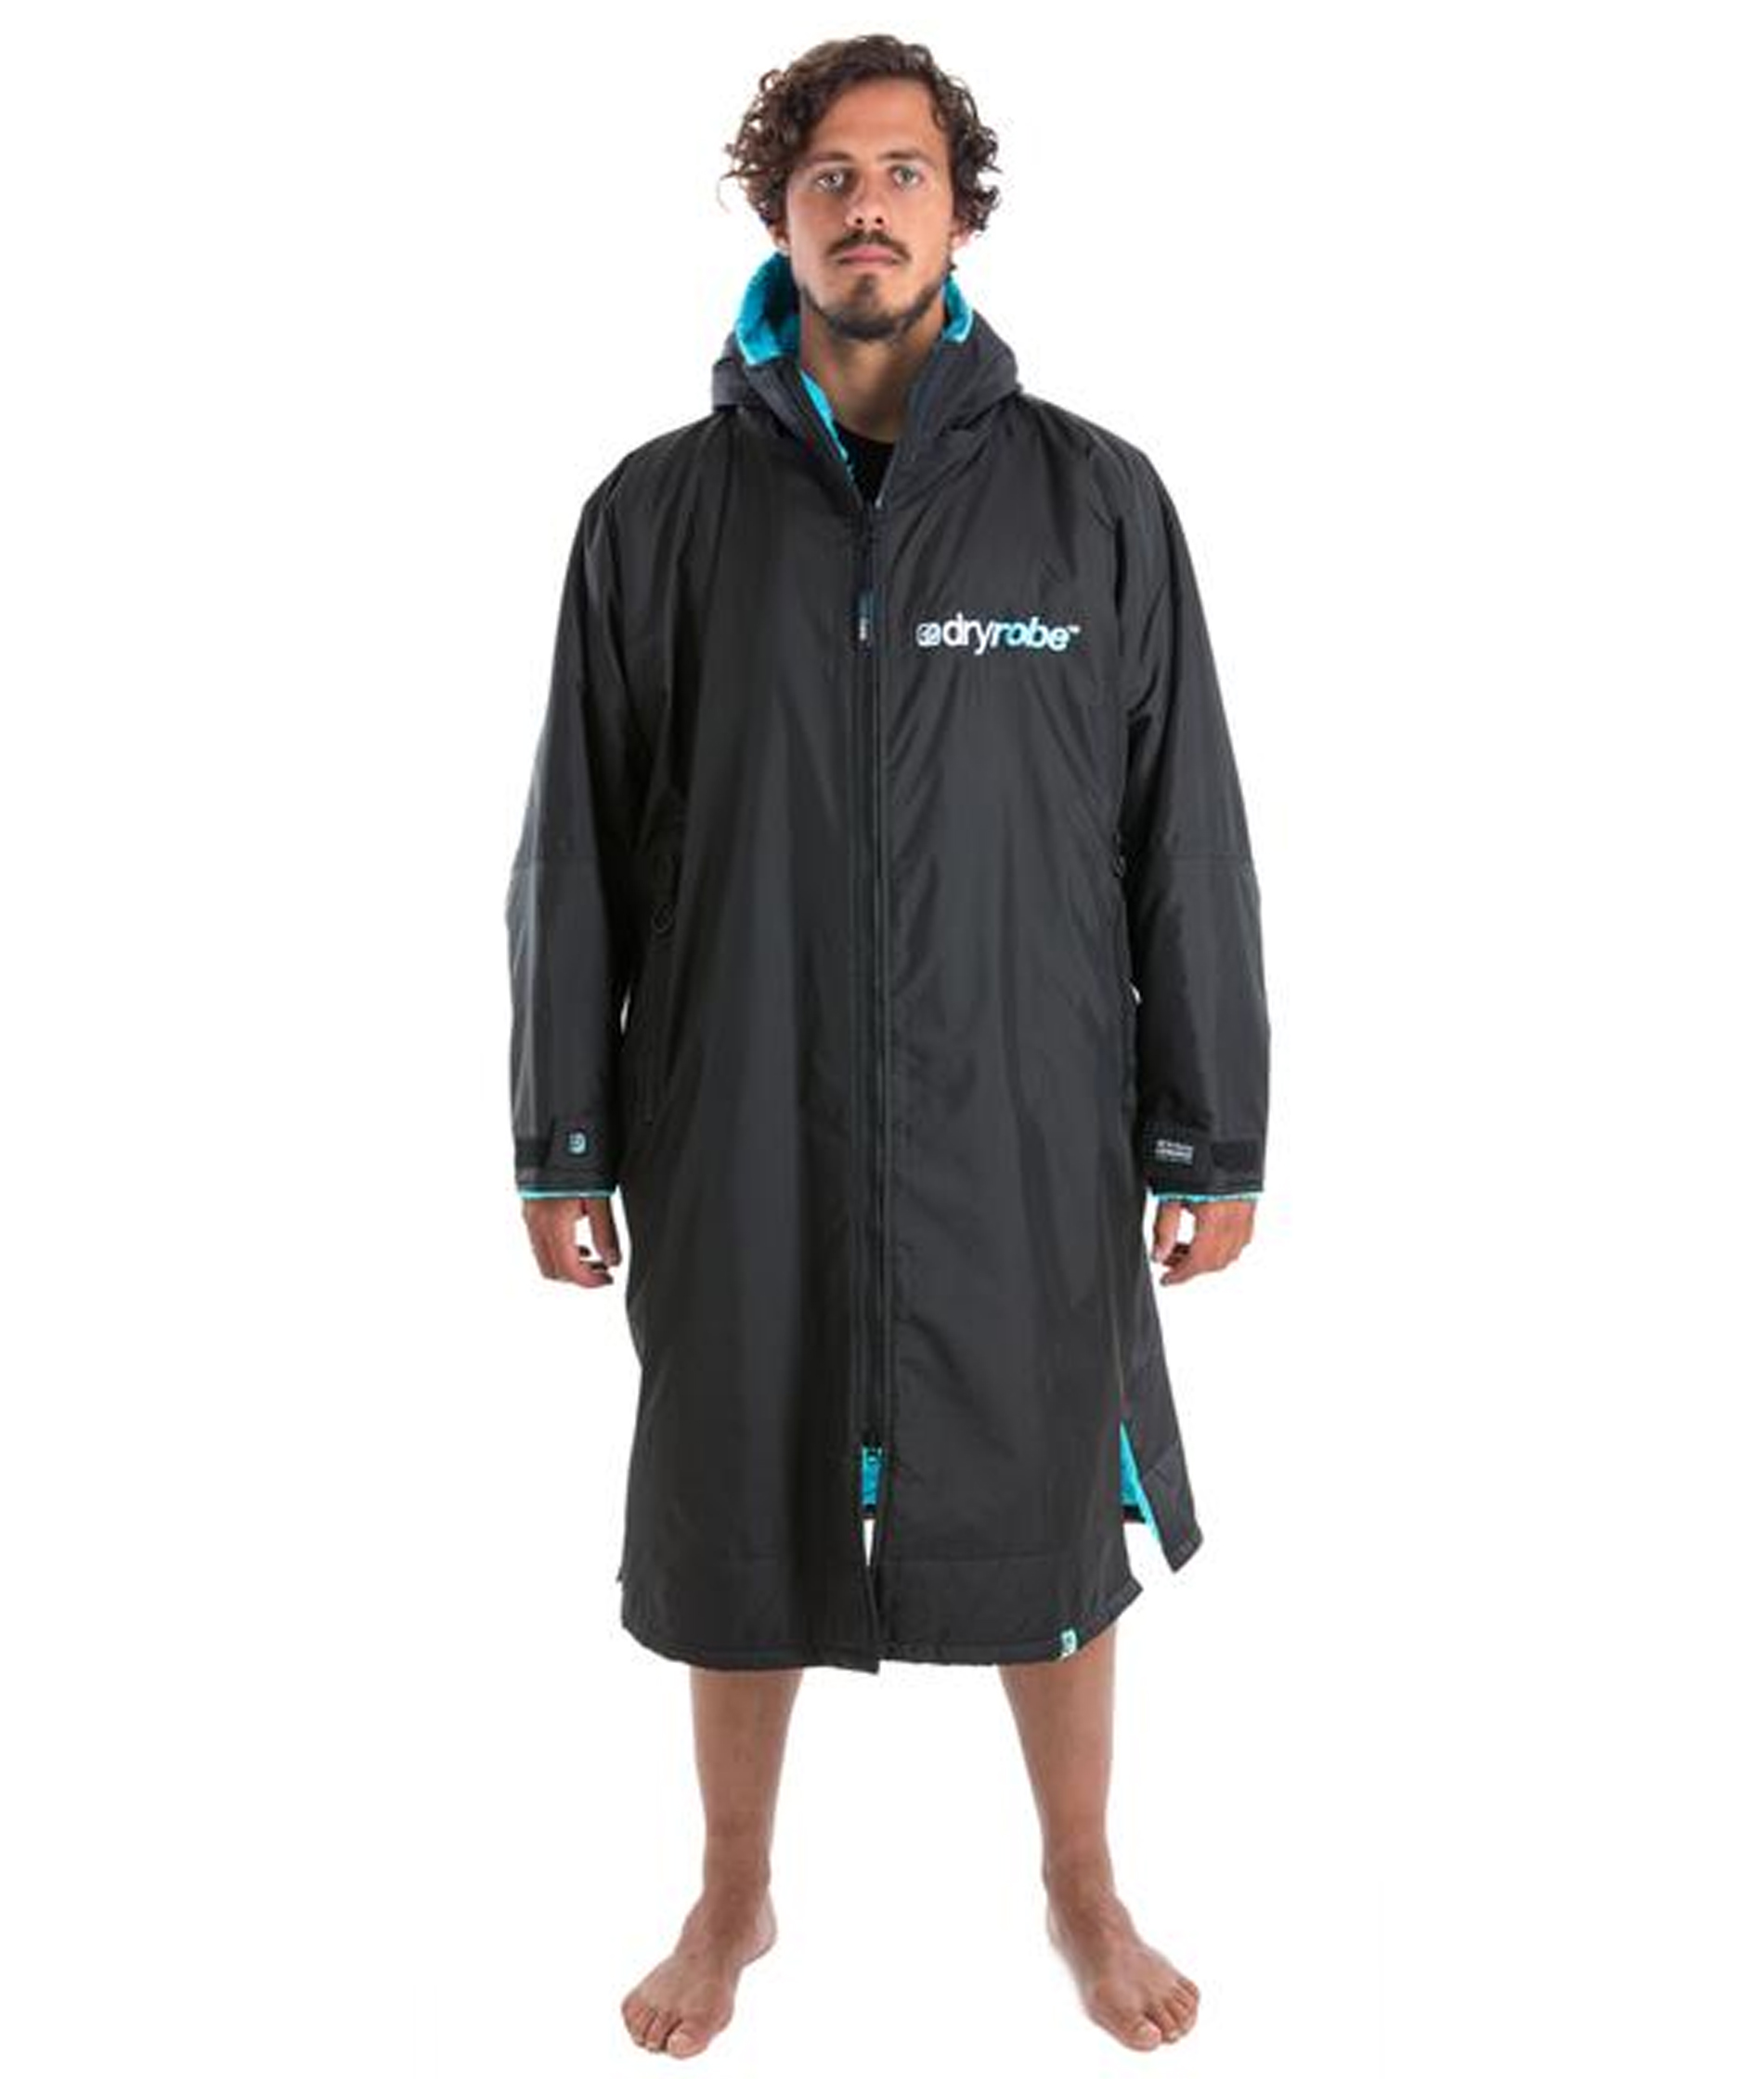 Dryrobe Advance Long Sleeve Black/Blue - Large